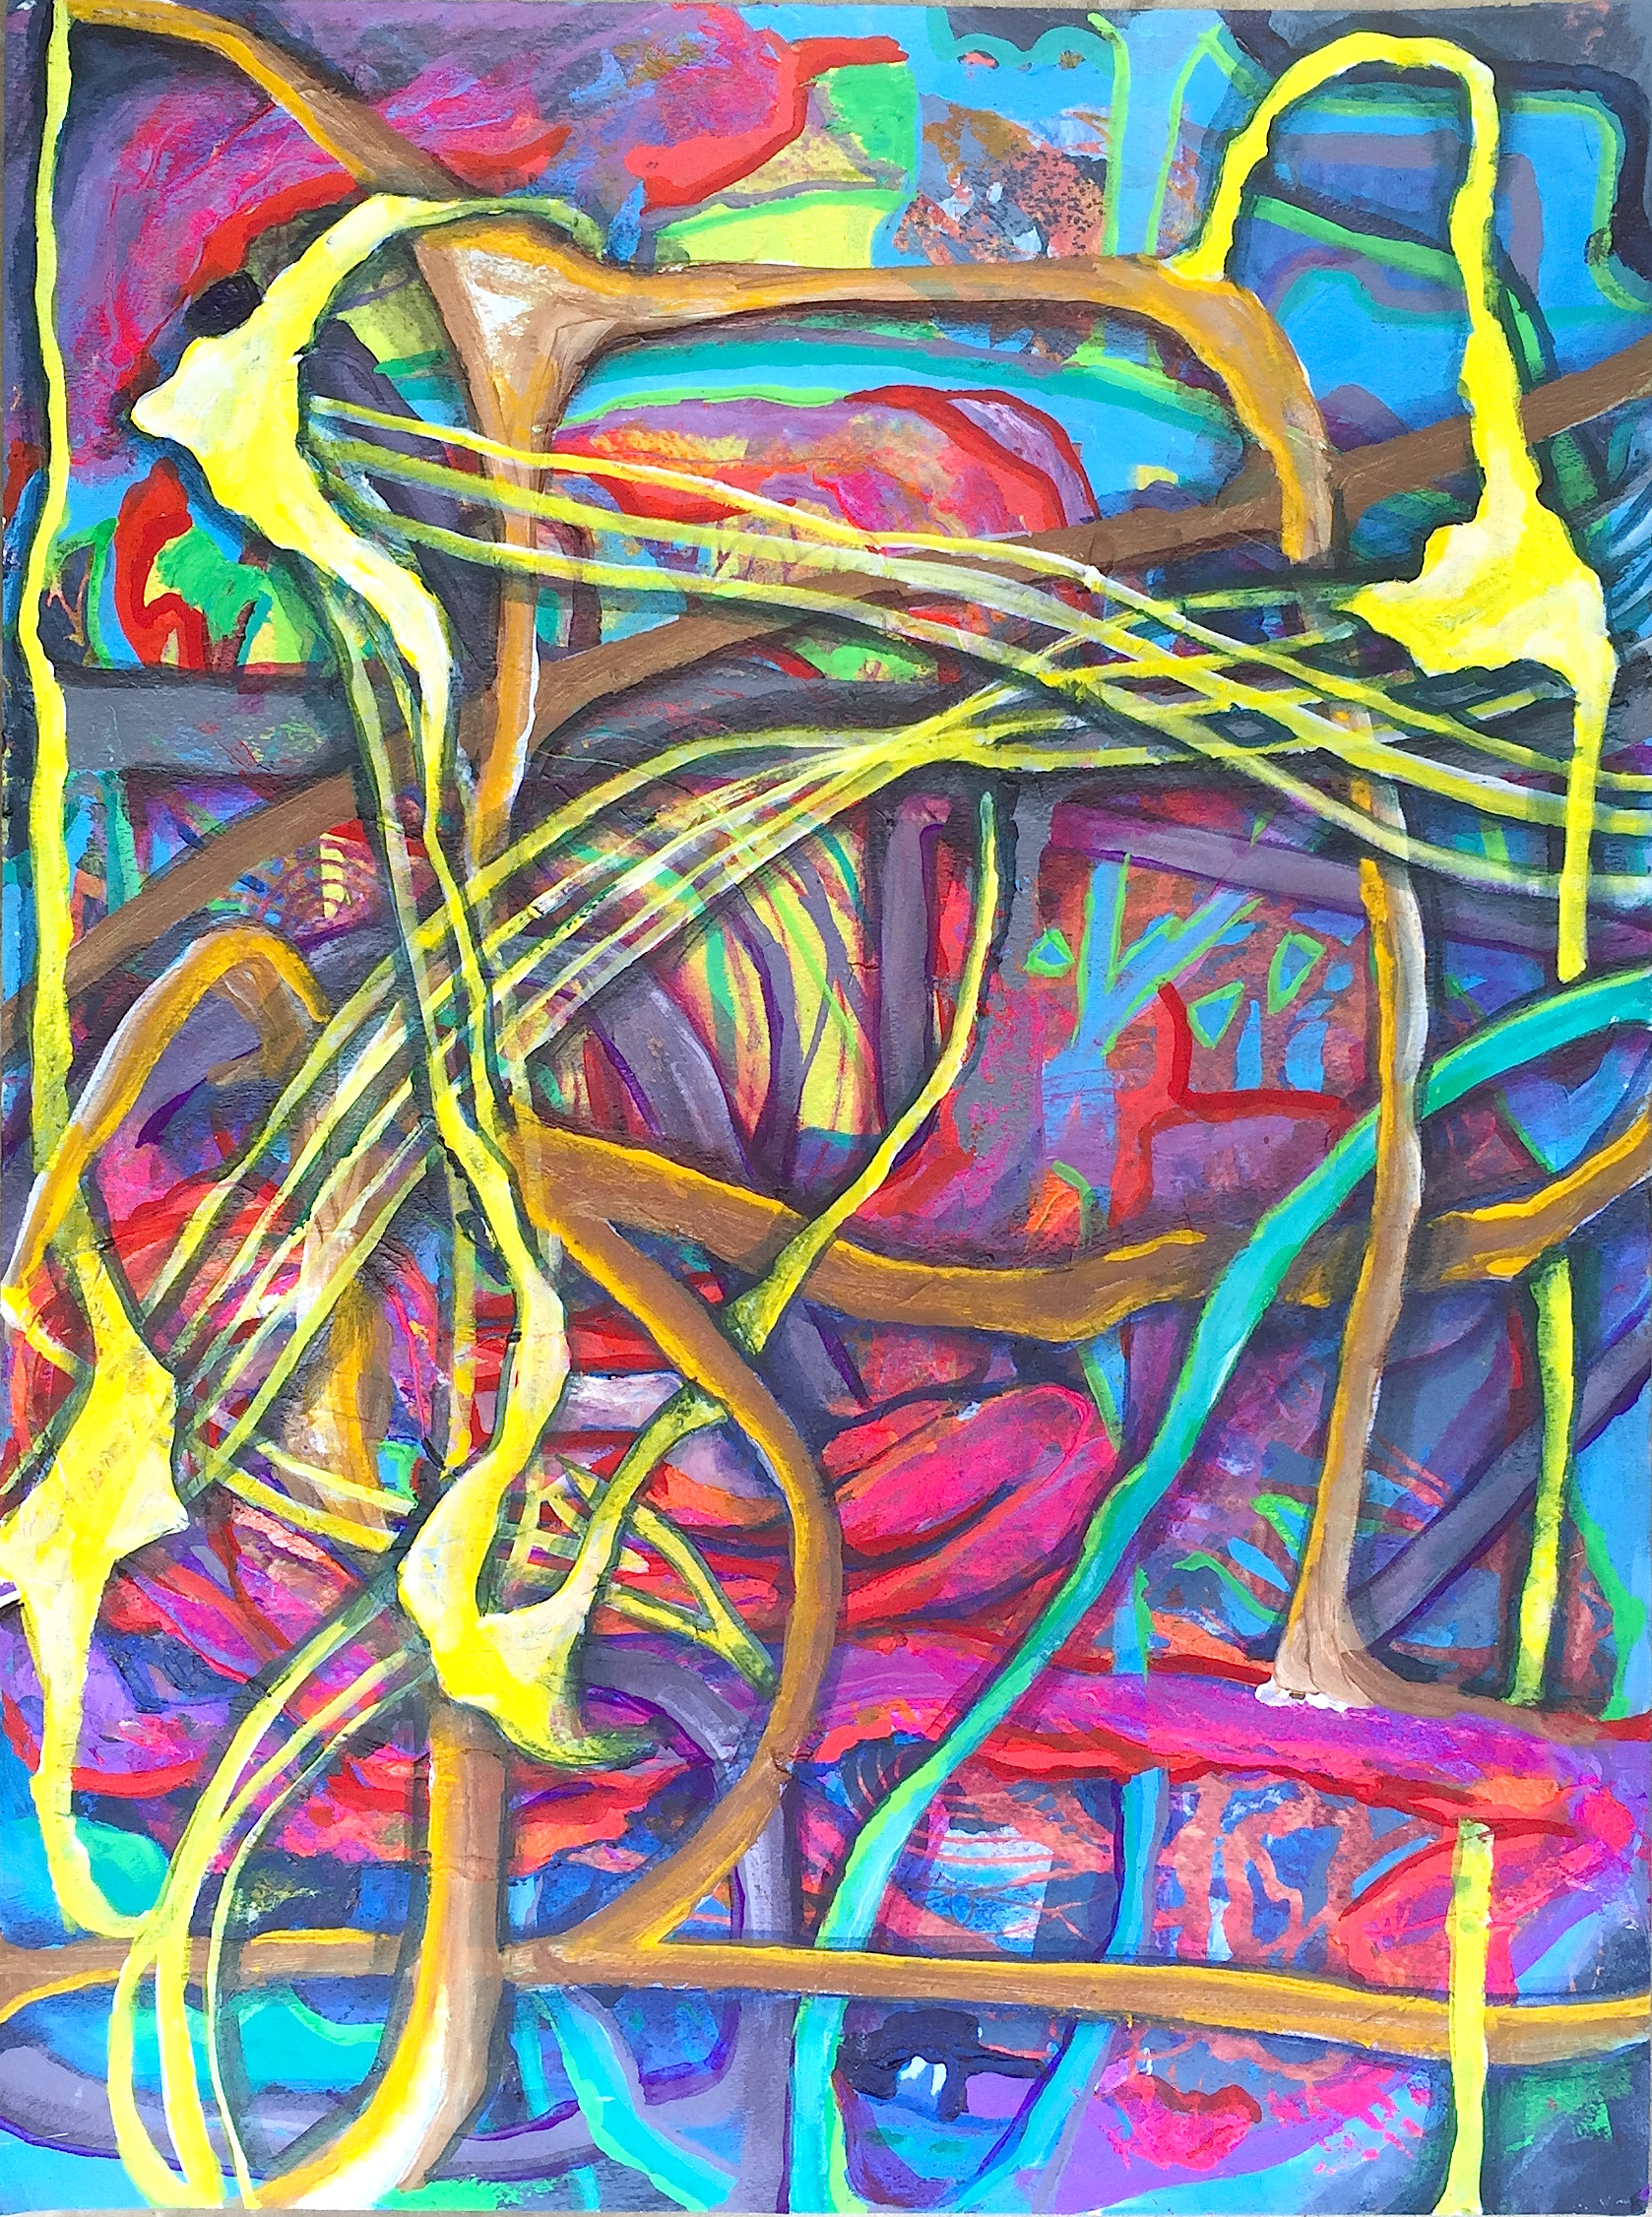 """Crossed Lines, mixed media on paper, 24"""" x 18"""", 2015"""